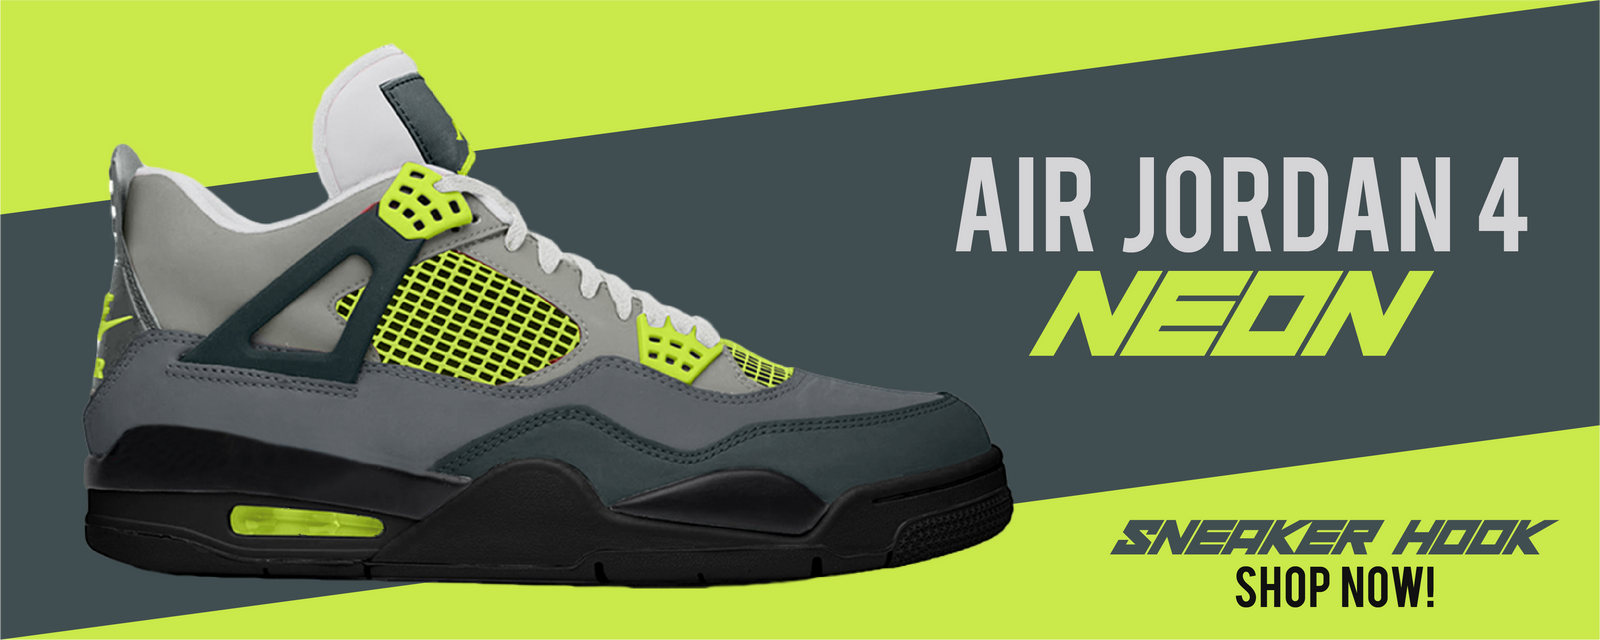 Jordan 4 Neon Clothing to match Sneakers | Clothing to match Air Jordan 4 Neon Shoes